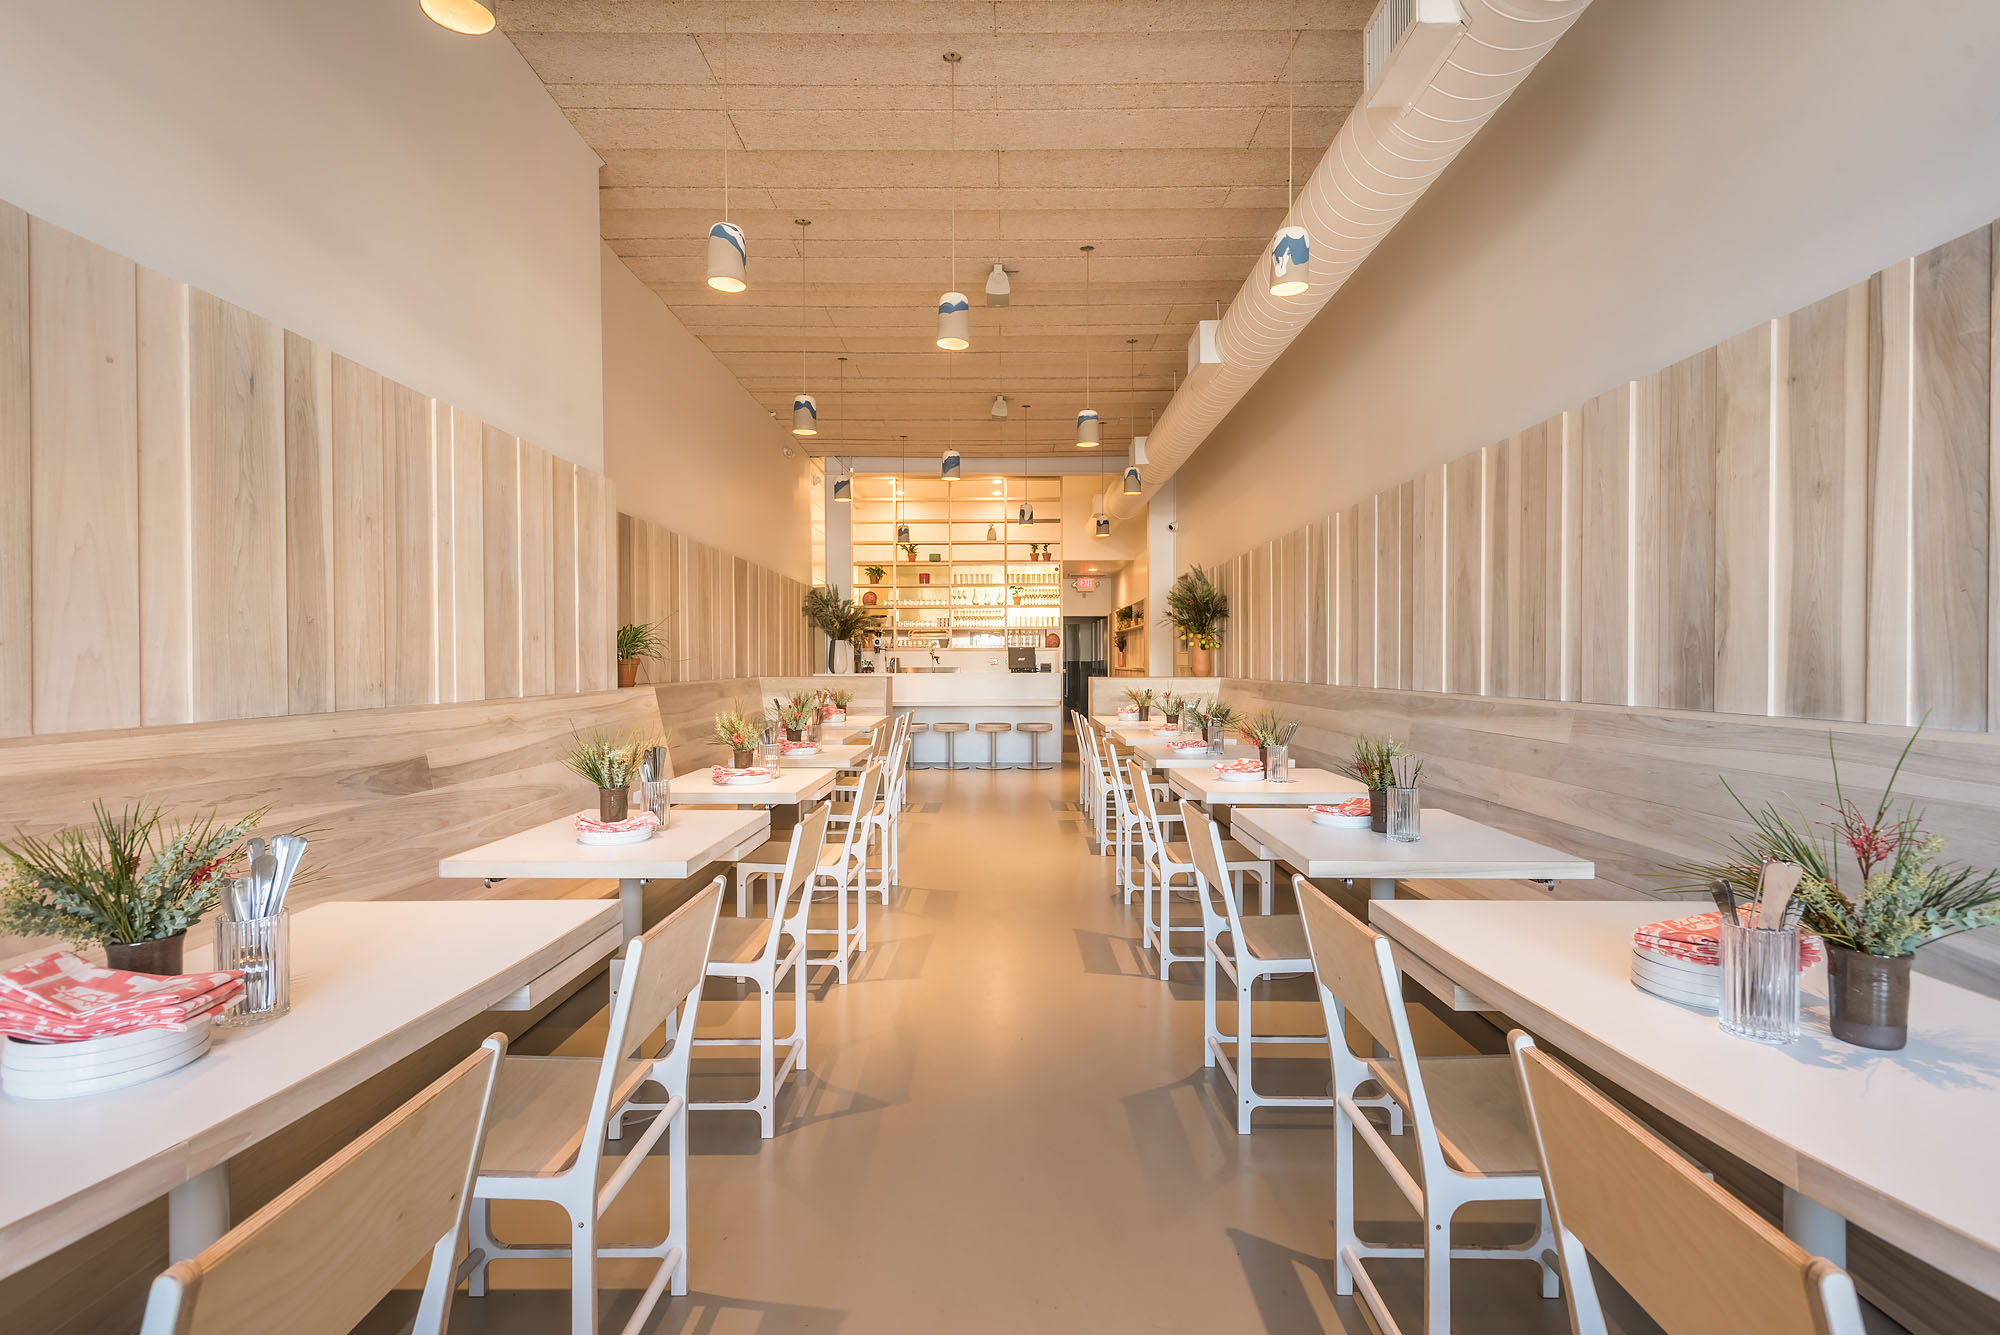 Kismet is a perfect new all day player for los feliz